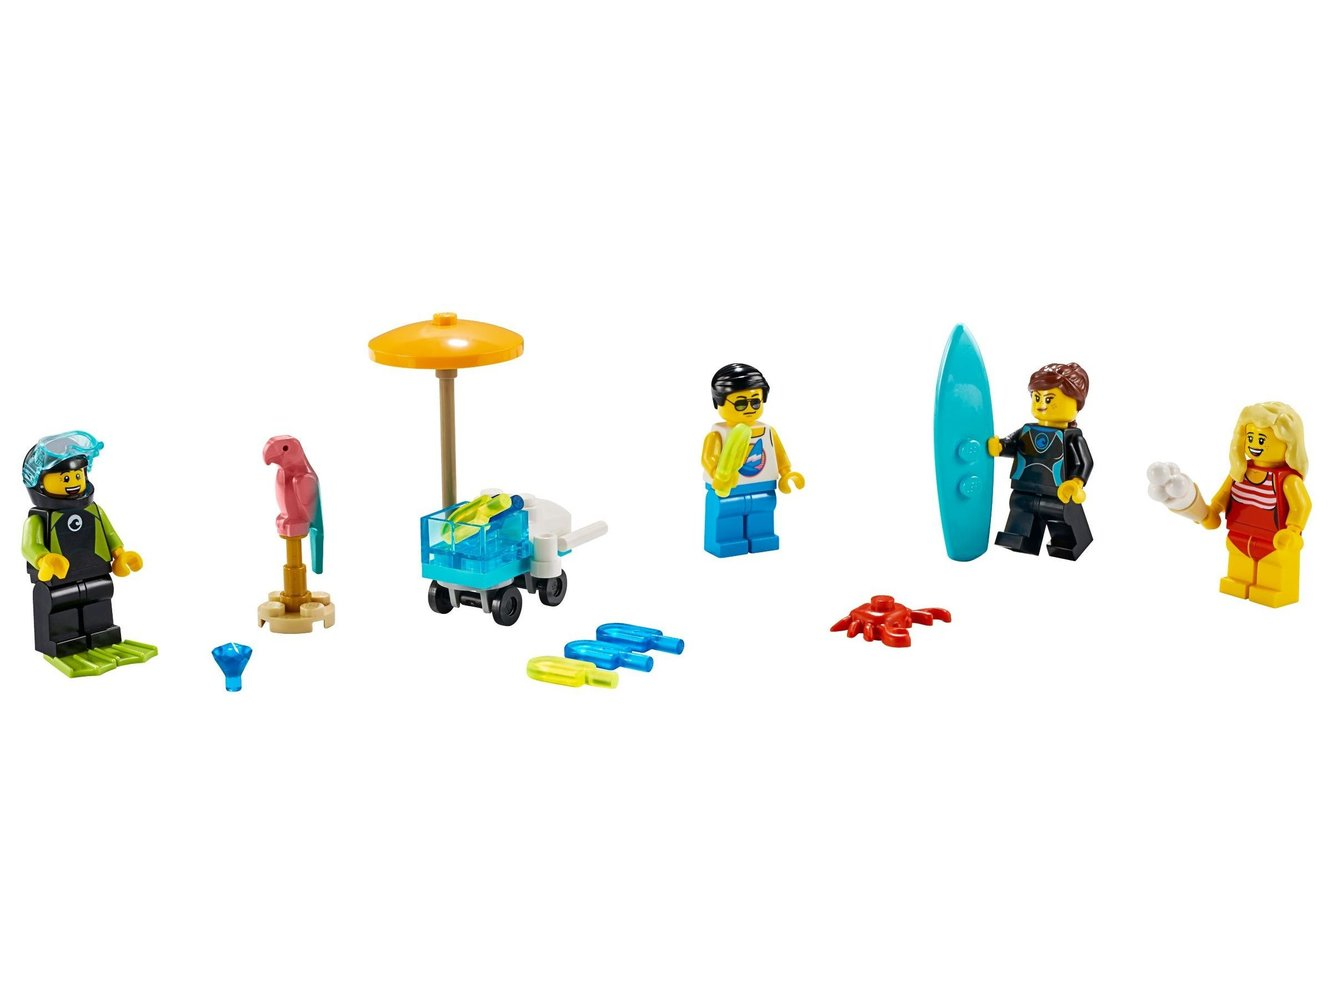 Summer Celebration Minifigure Set